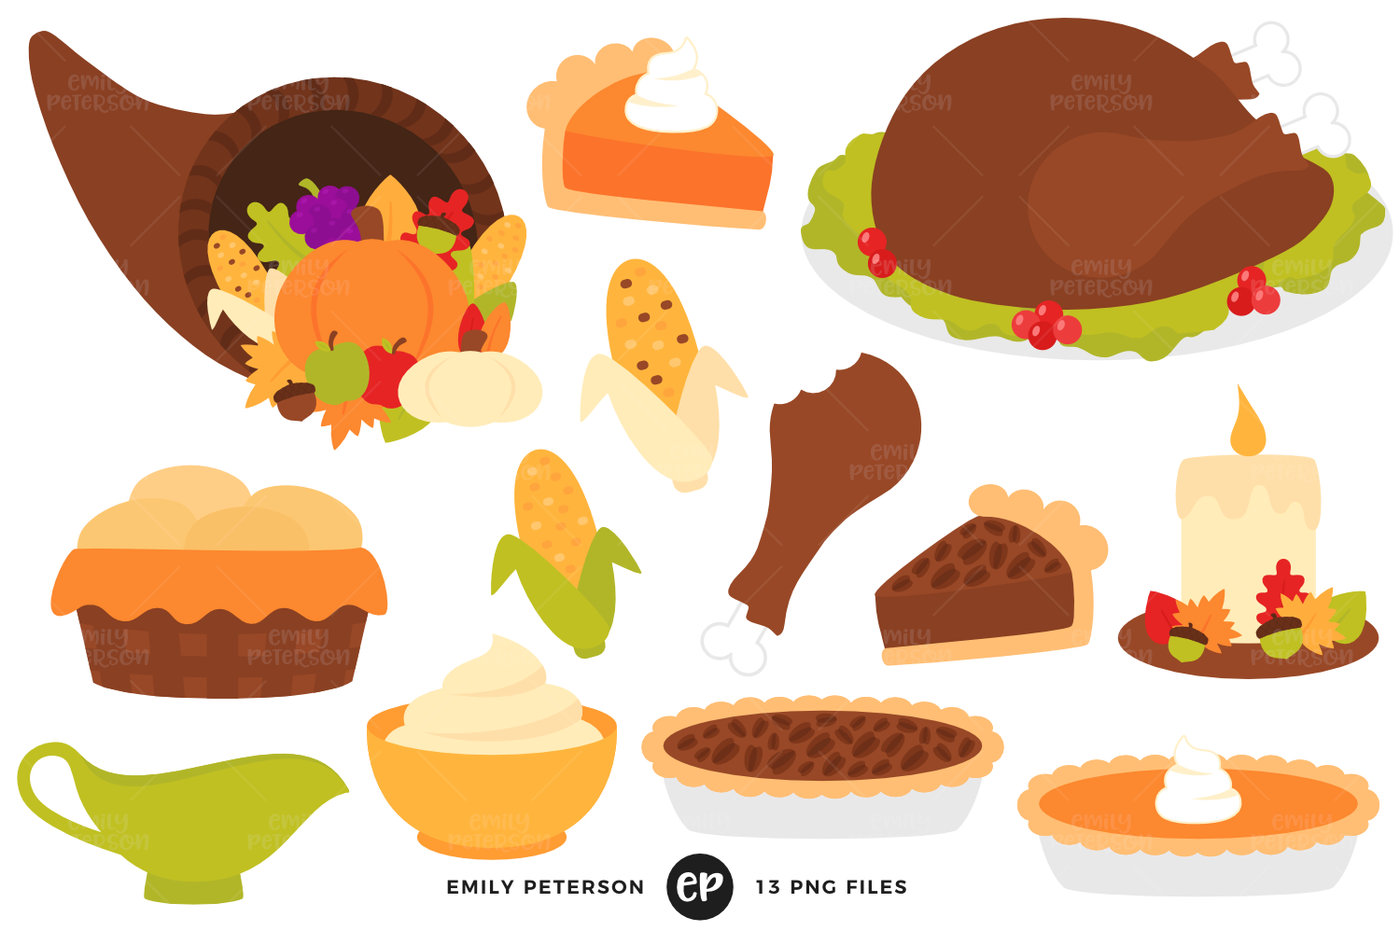 Dinner by emily peterson. Clipart thanksgiving eating